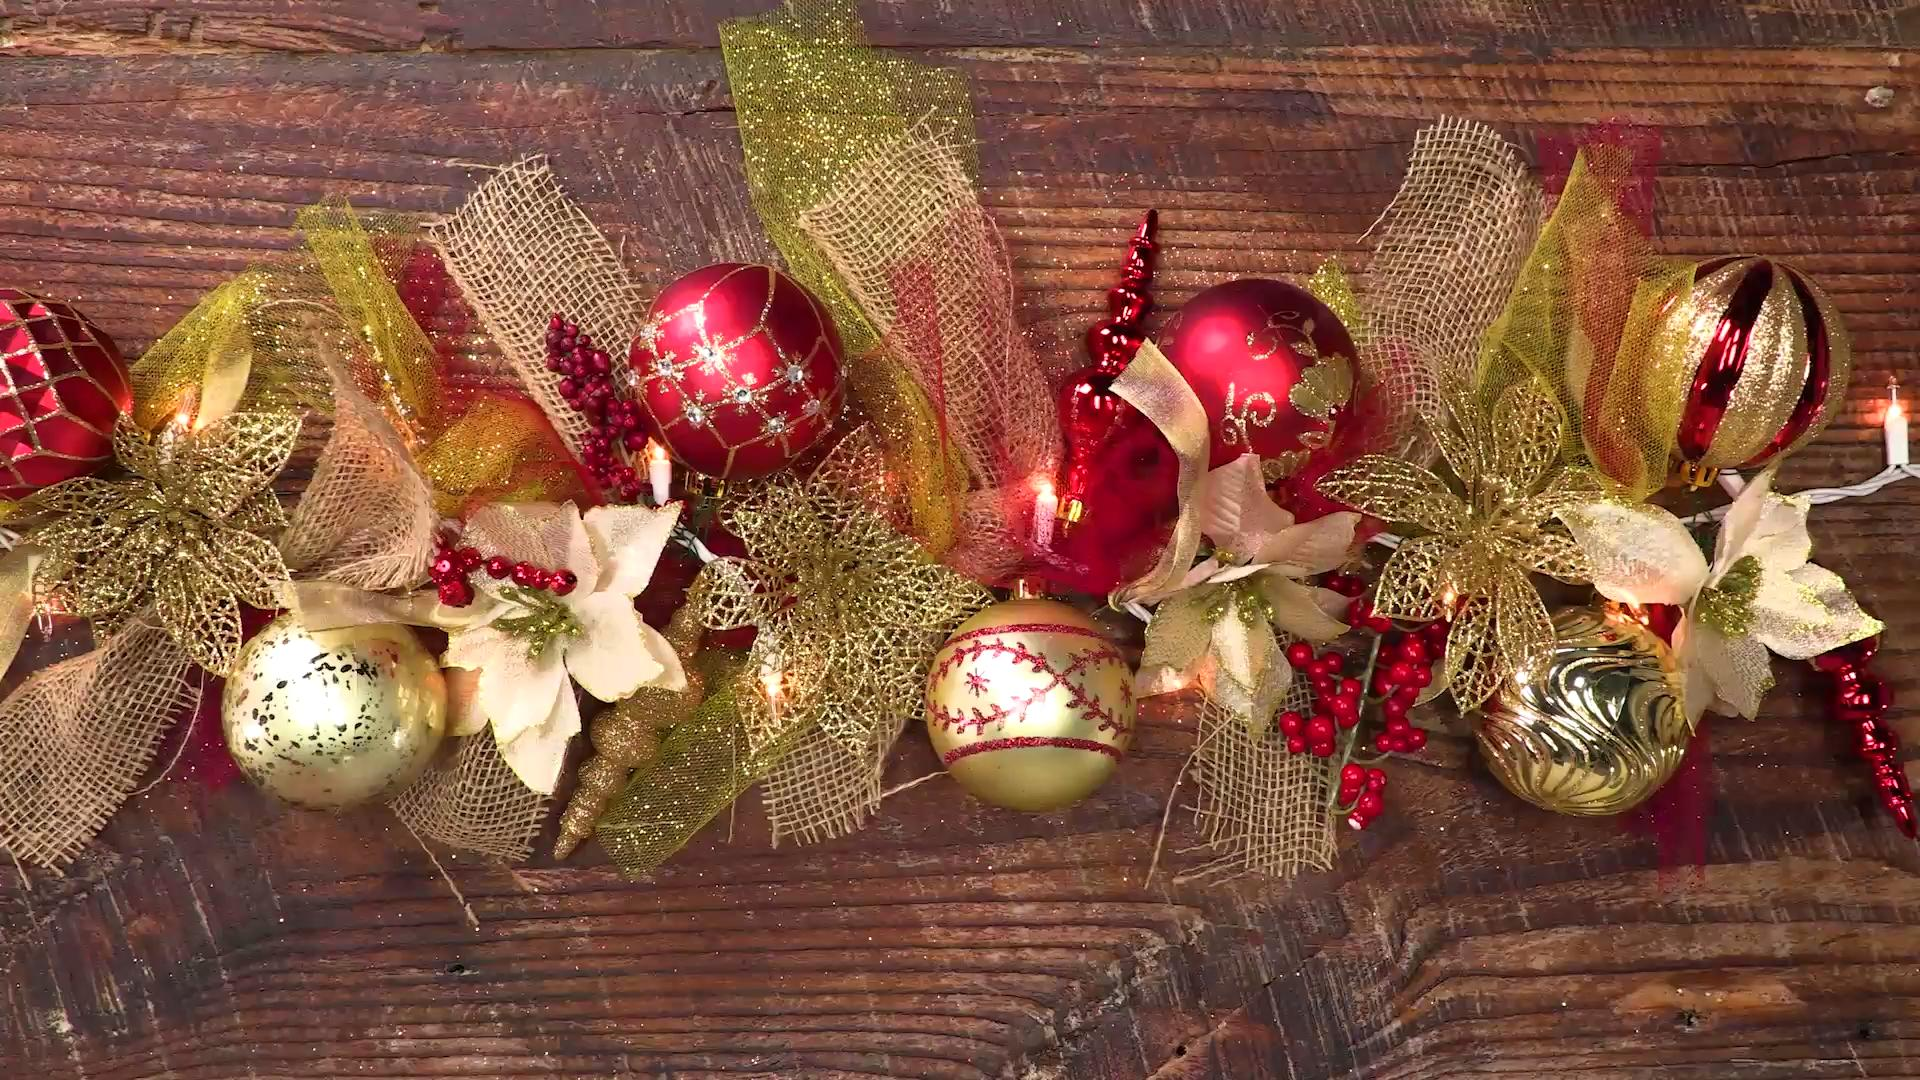 Best Way To String Lights On Christmas Tree Southern Living